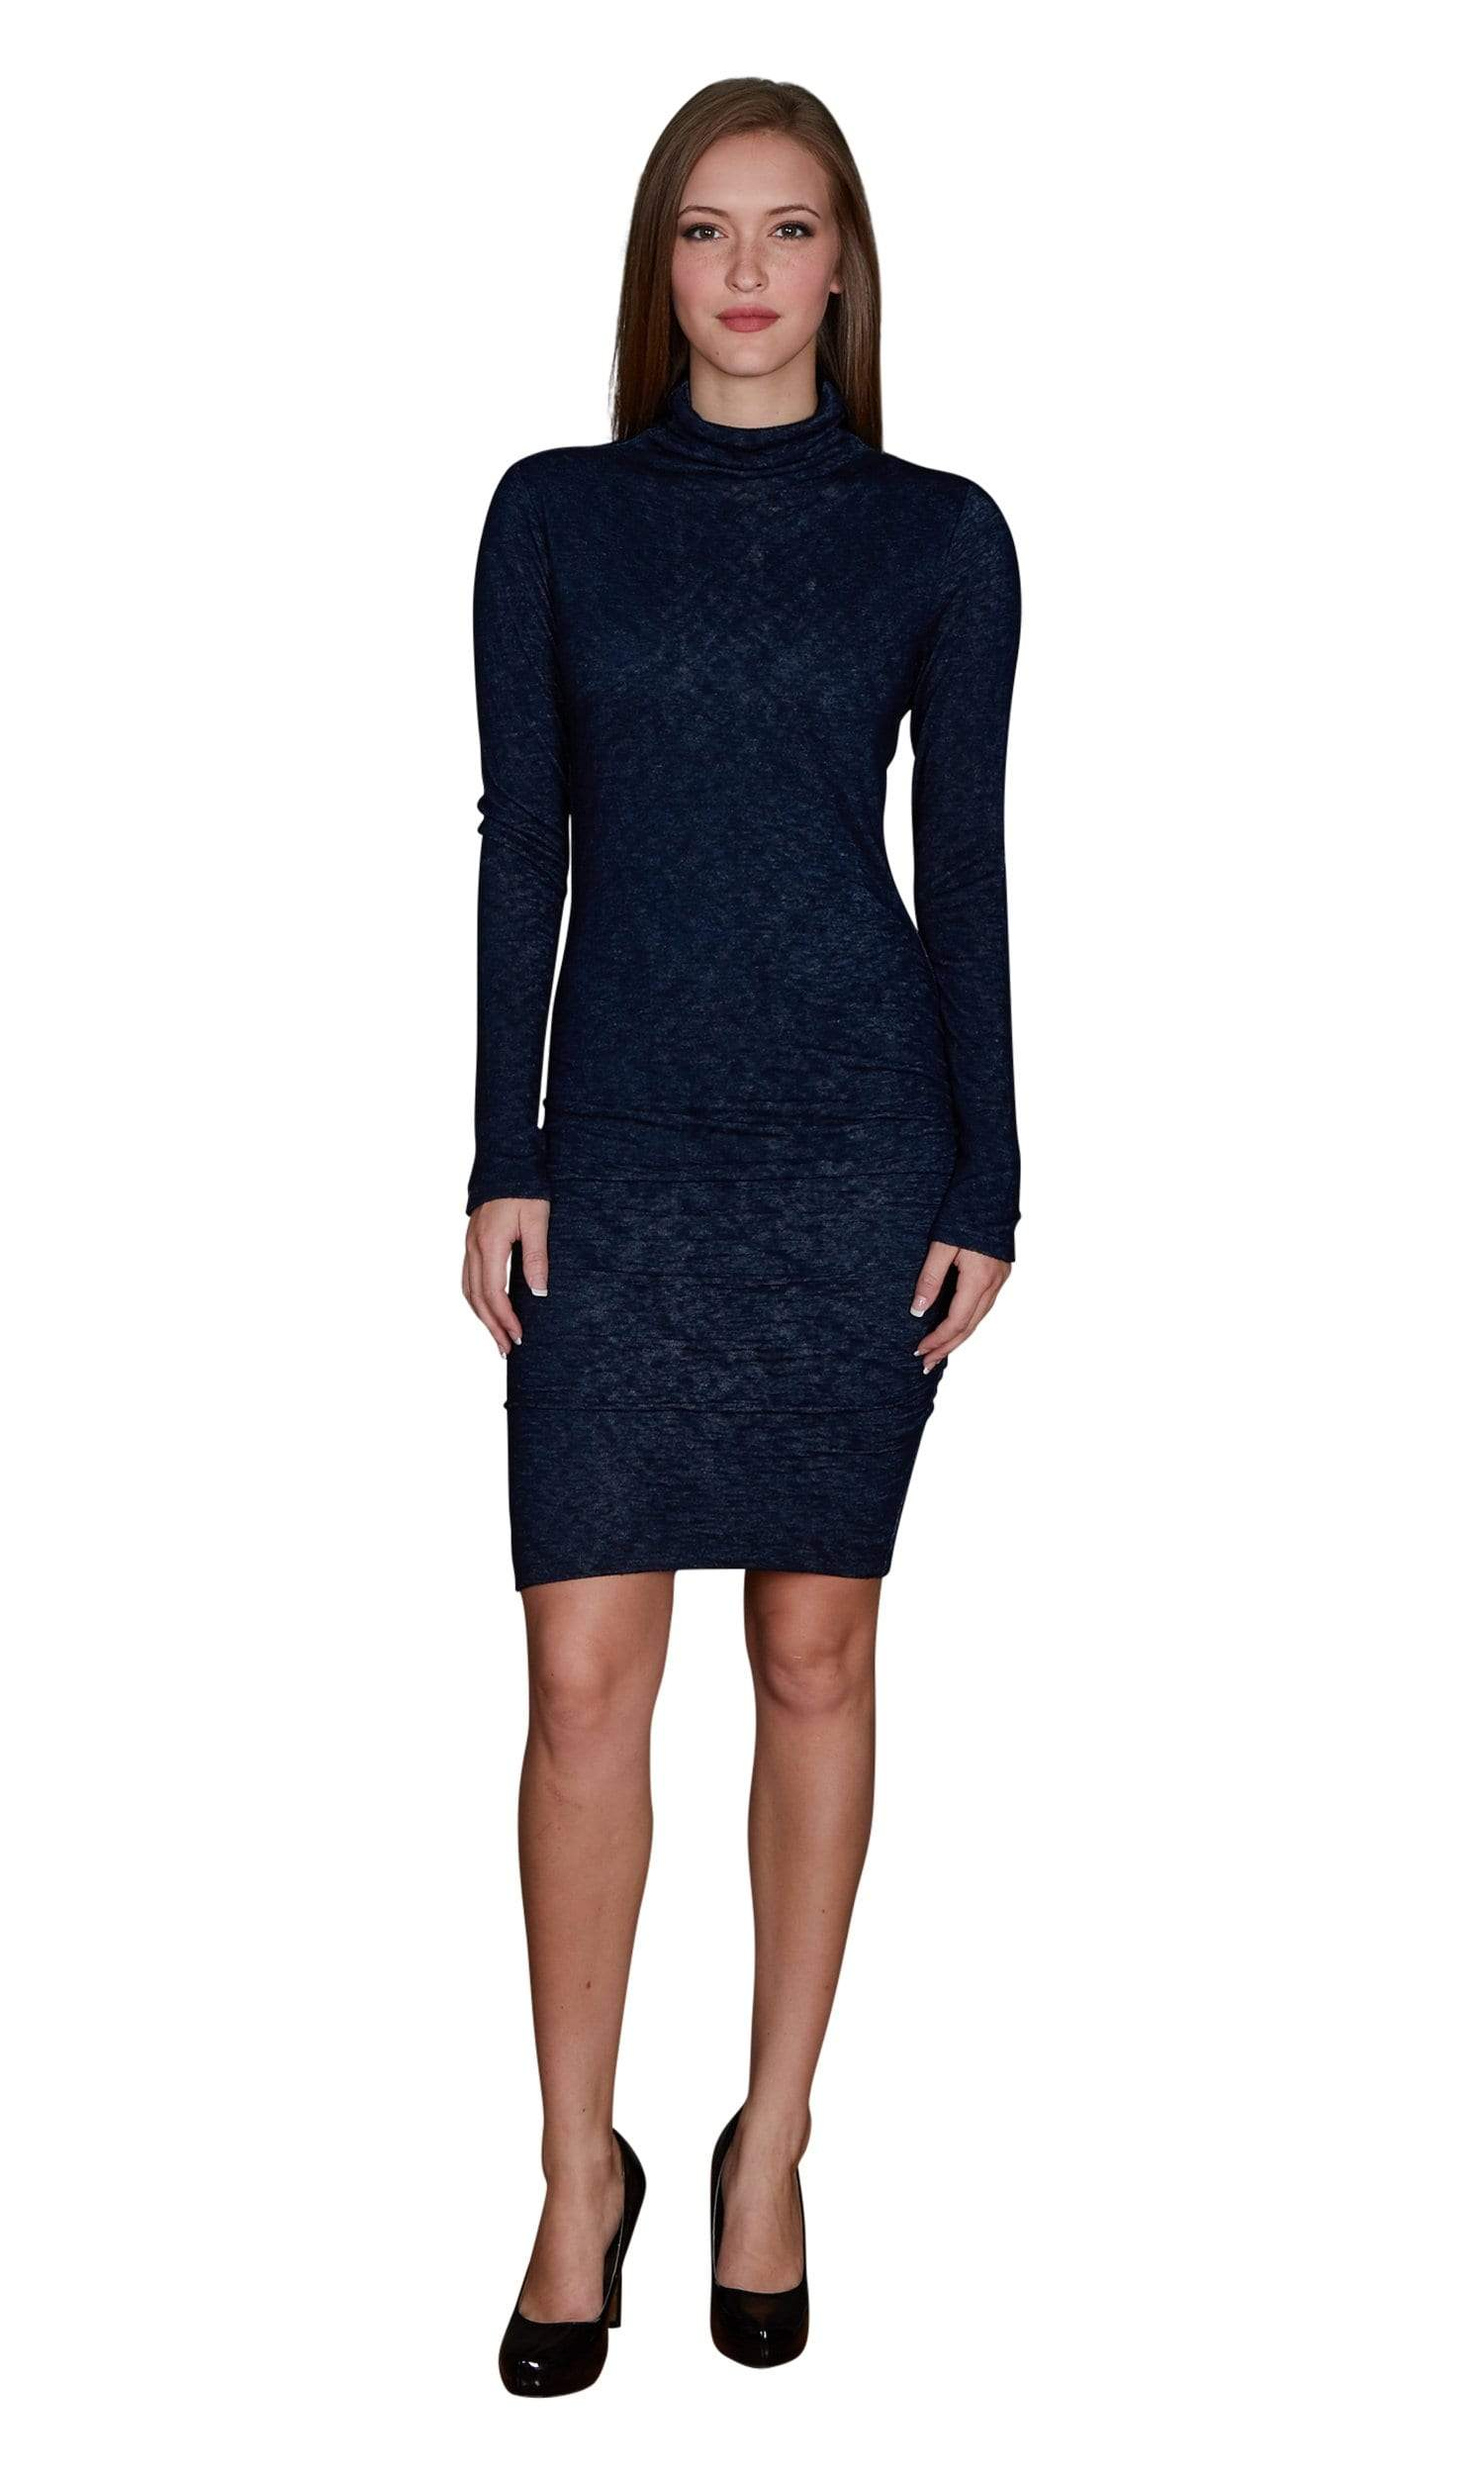 Velvet by Graham & Spencer Dacey Textured Knit Turtleneck Dress